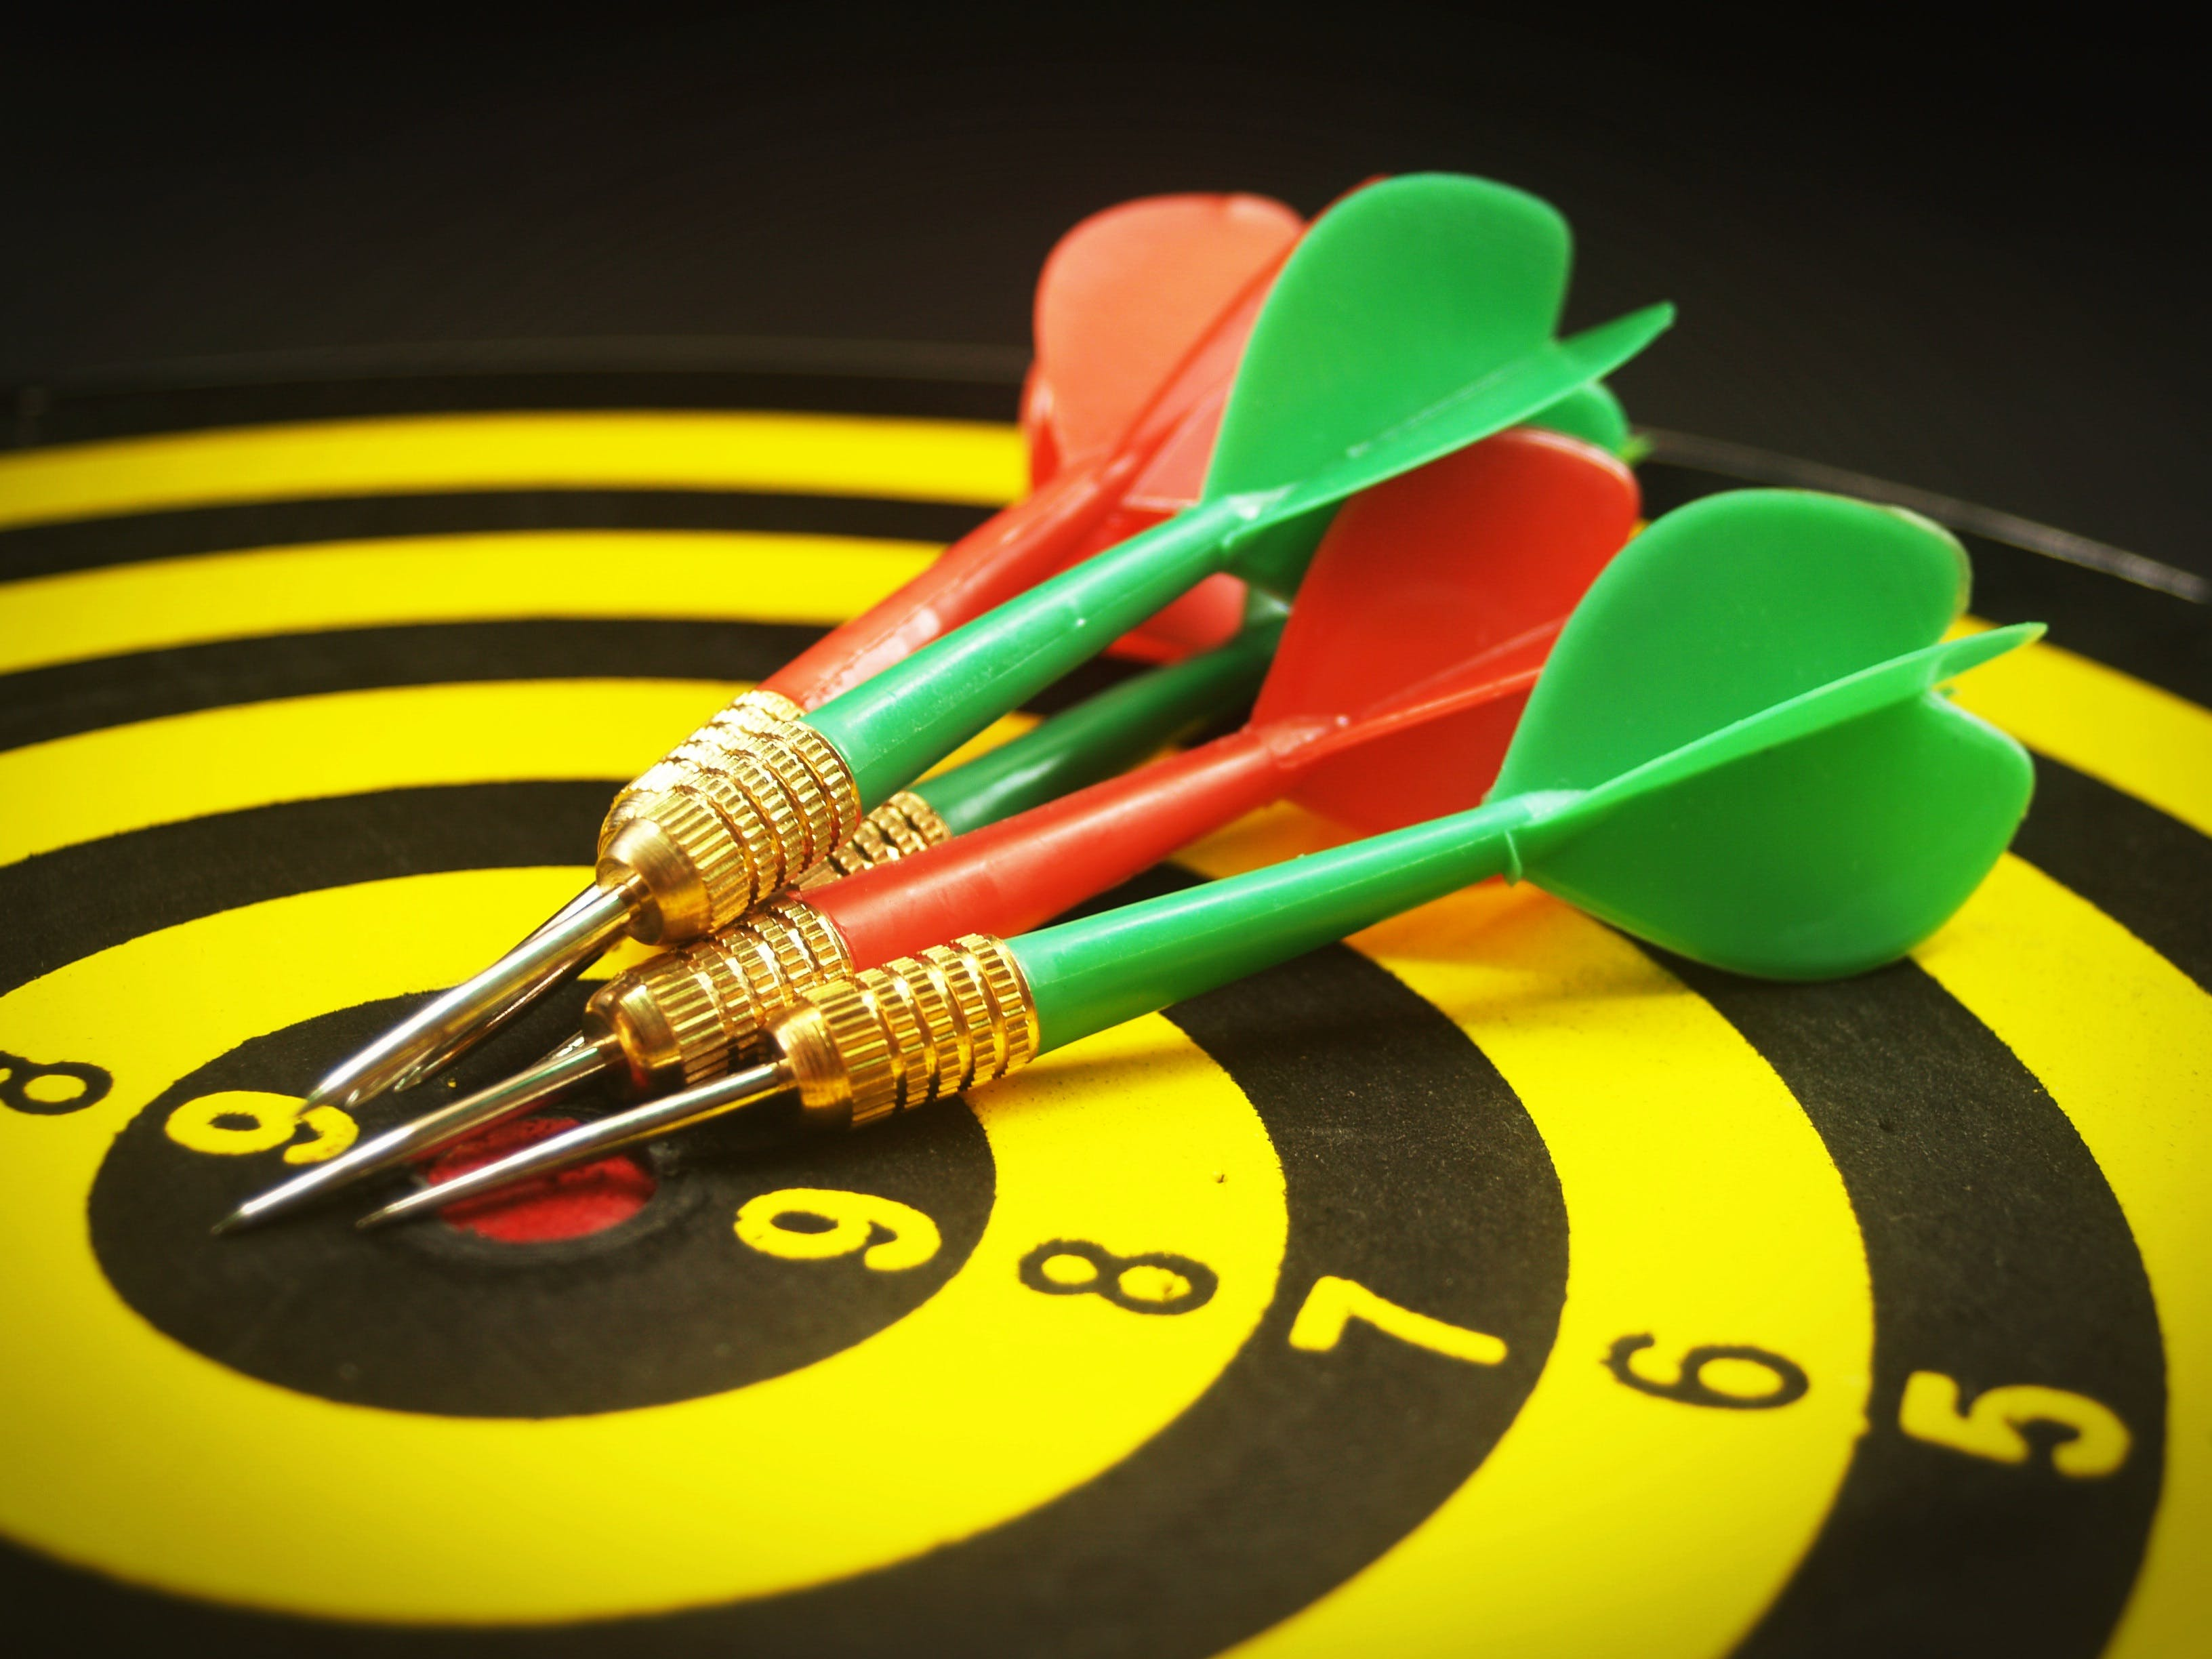 Yellow and Black Dartboard With Pins Illustration